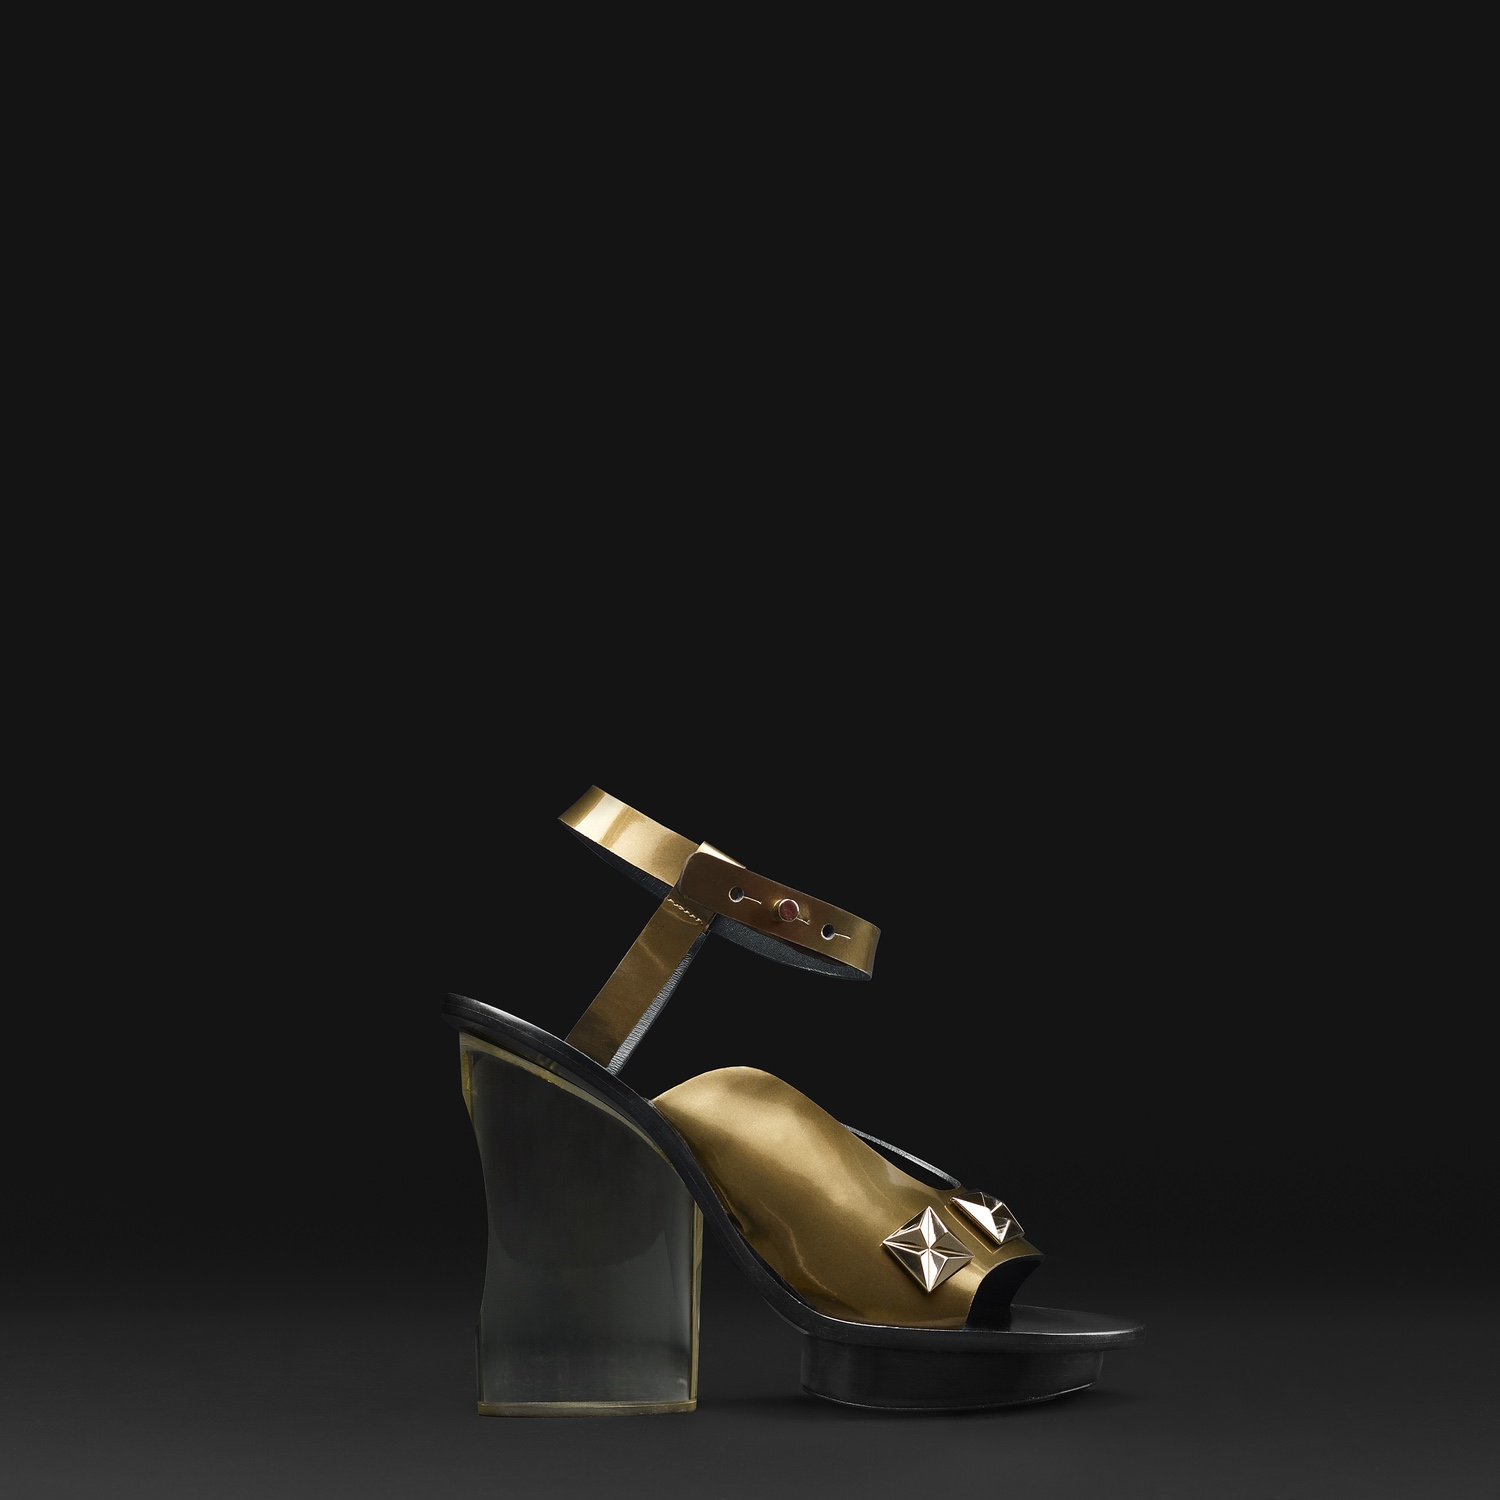 ALAINTONDOWSKI_FALLWINTER2015_SHOES_AT0021-B